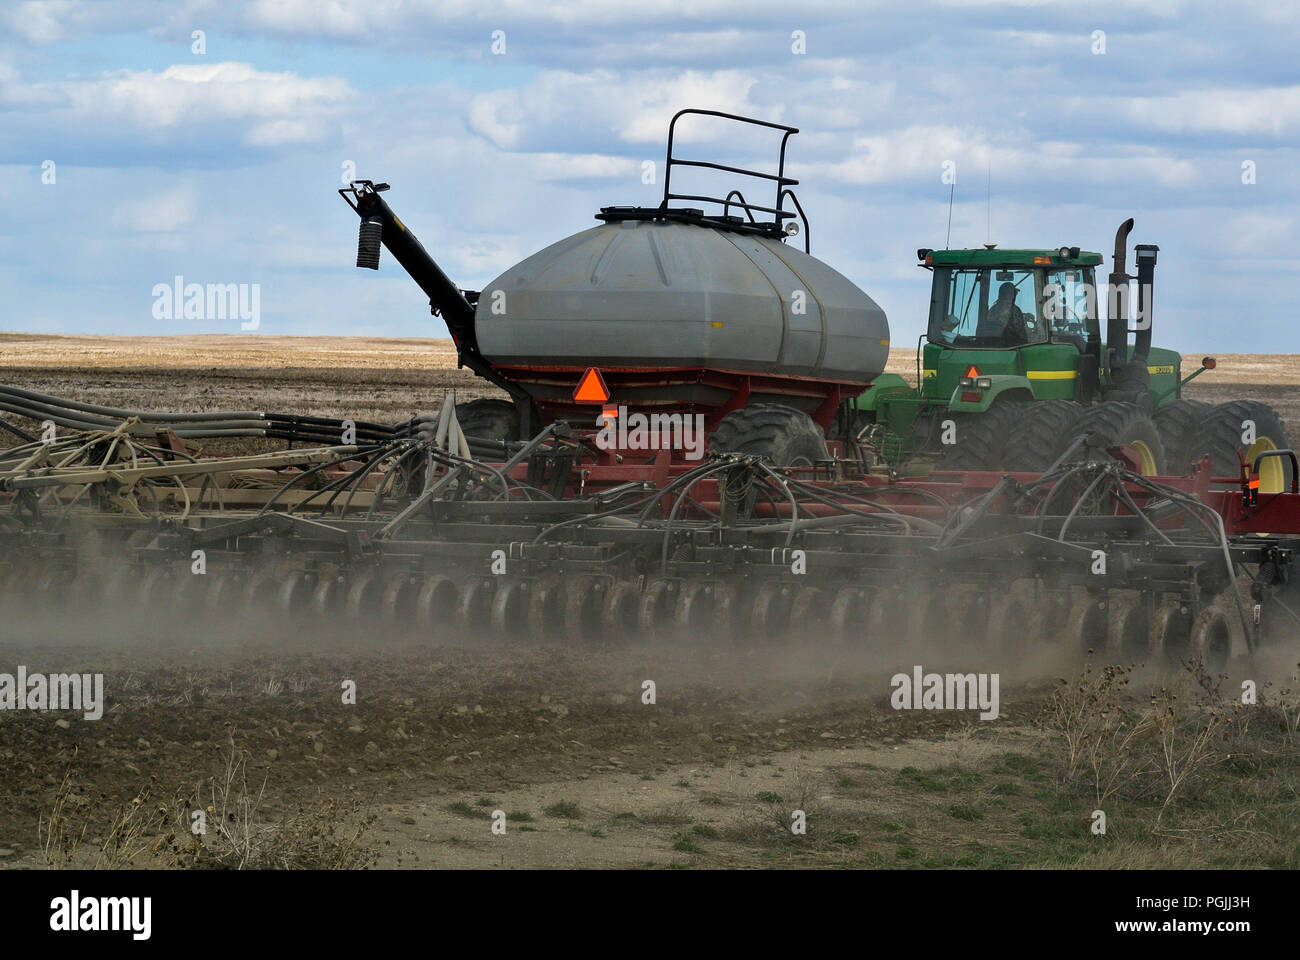 Air Drill seeding in Montana - Stock Image